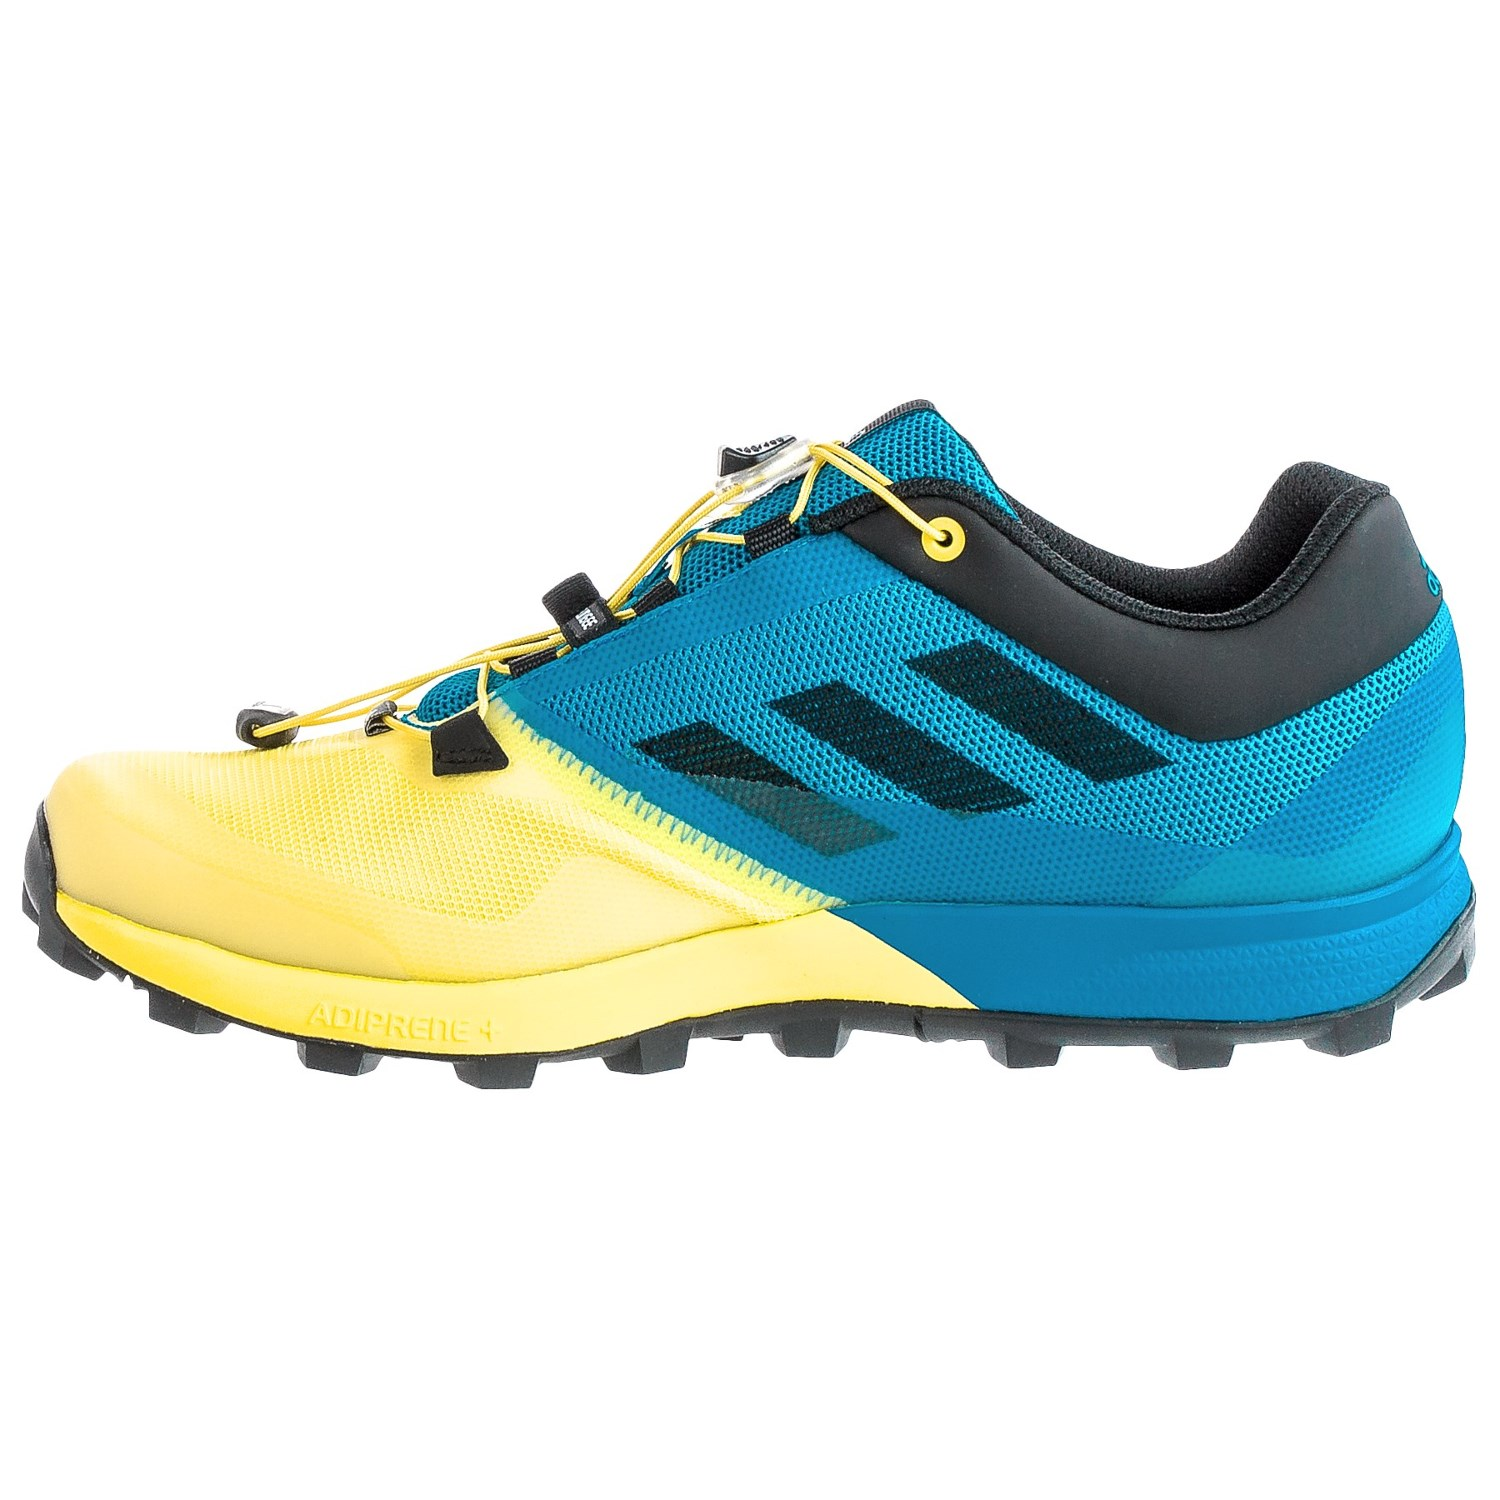 Adidas Outdoor Terrex Trailmaker Trail Running Shoes For